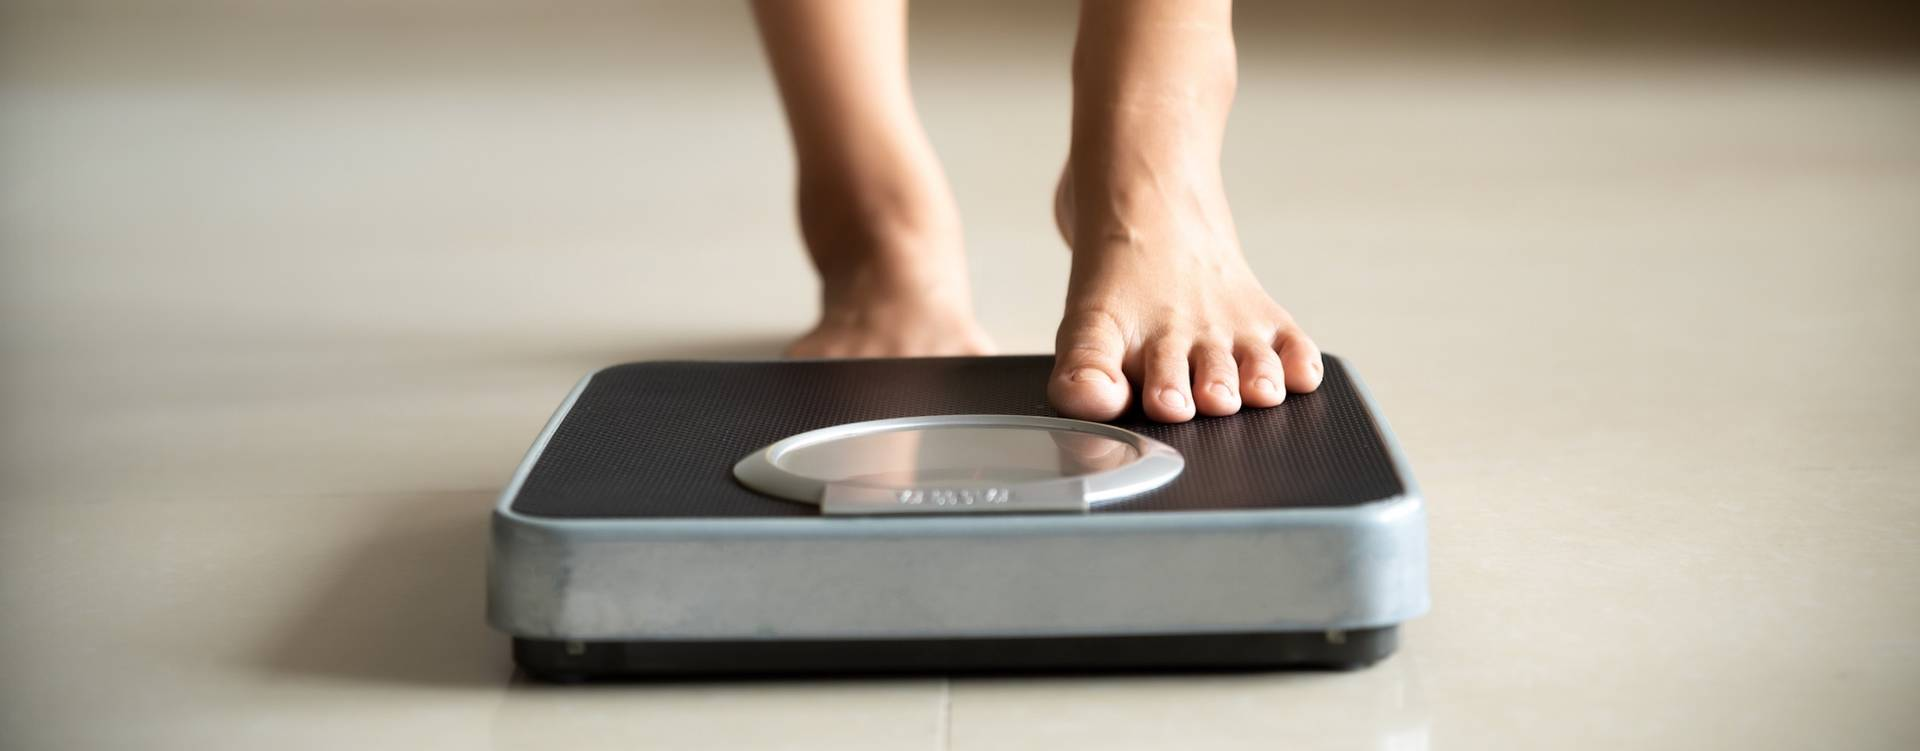 woman-stepping-on-scale